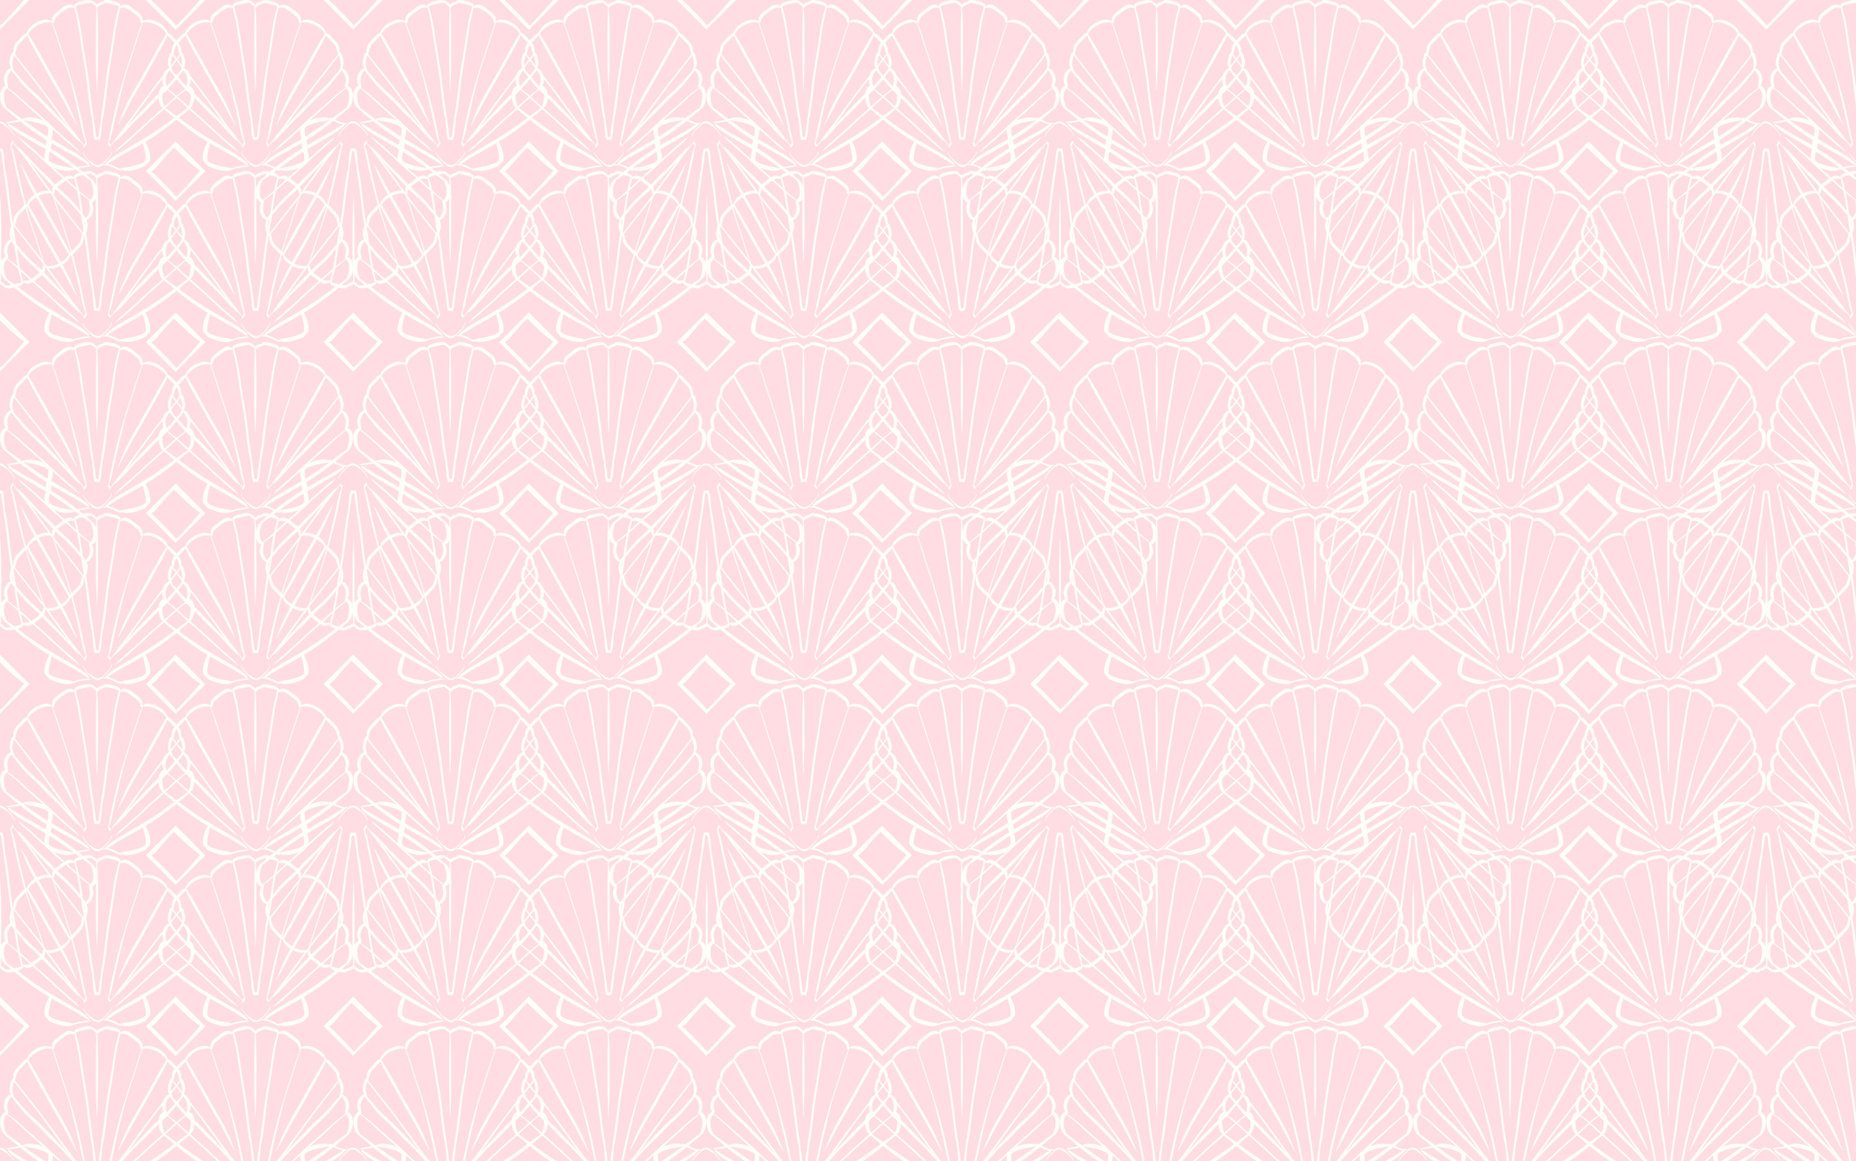 tory burch heart wallpaper - photo #27